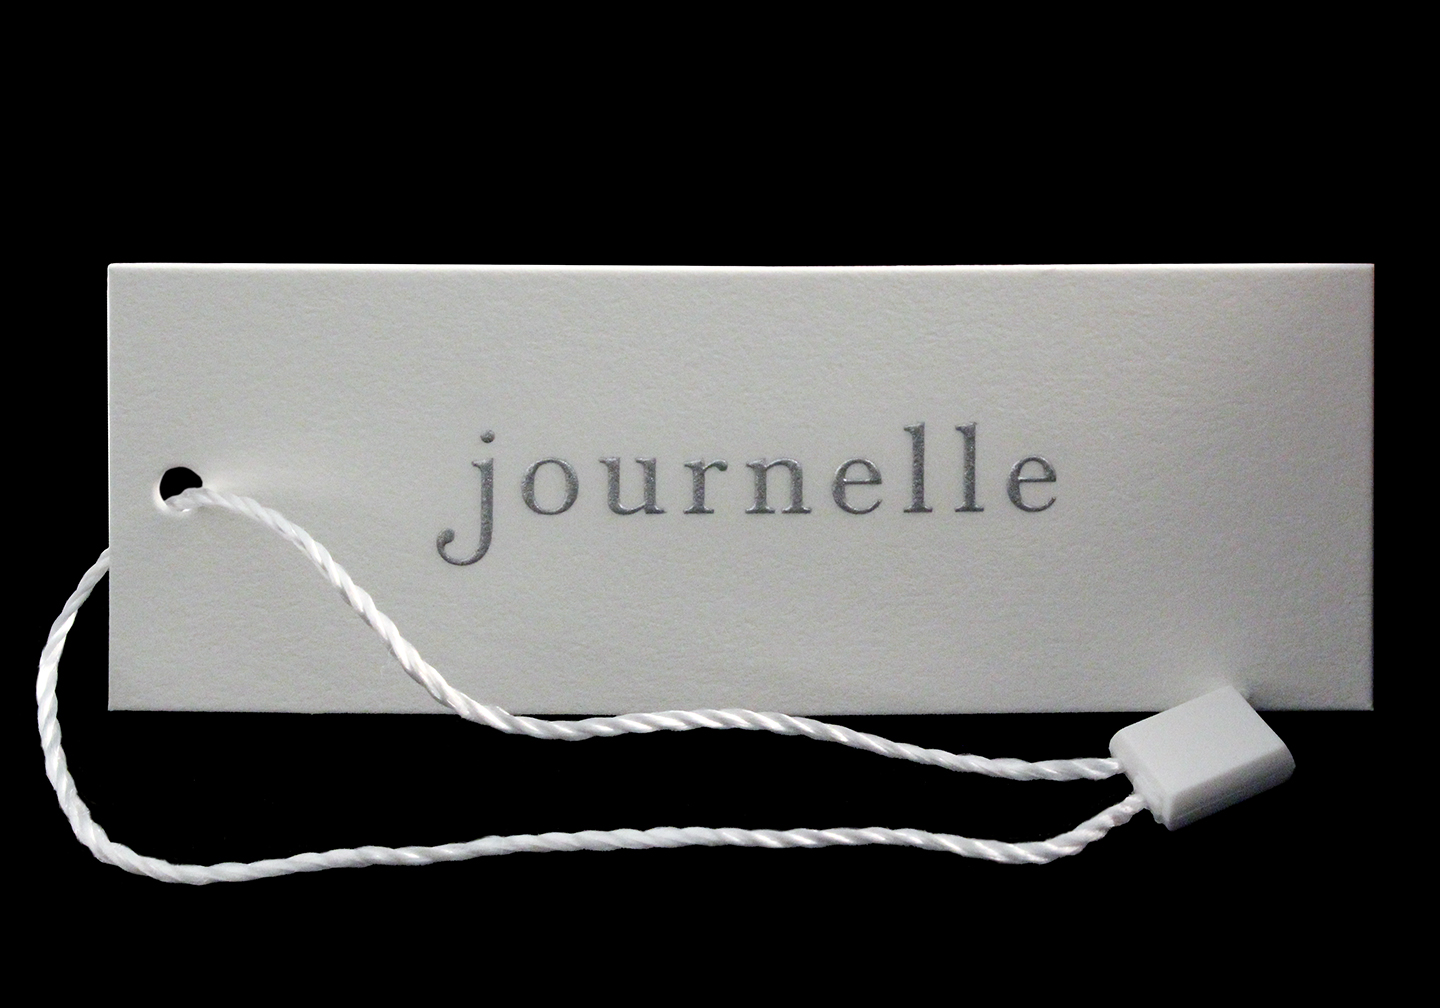 Journelle Tag 02 10x7 @144 DPI